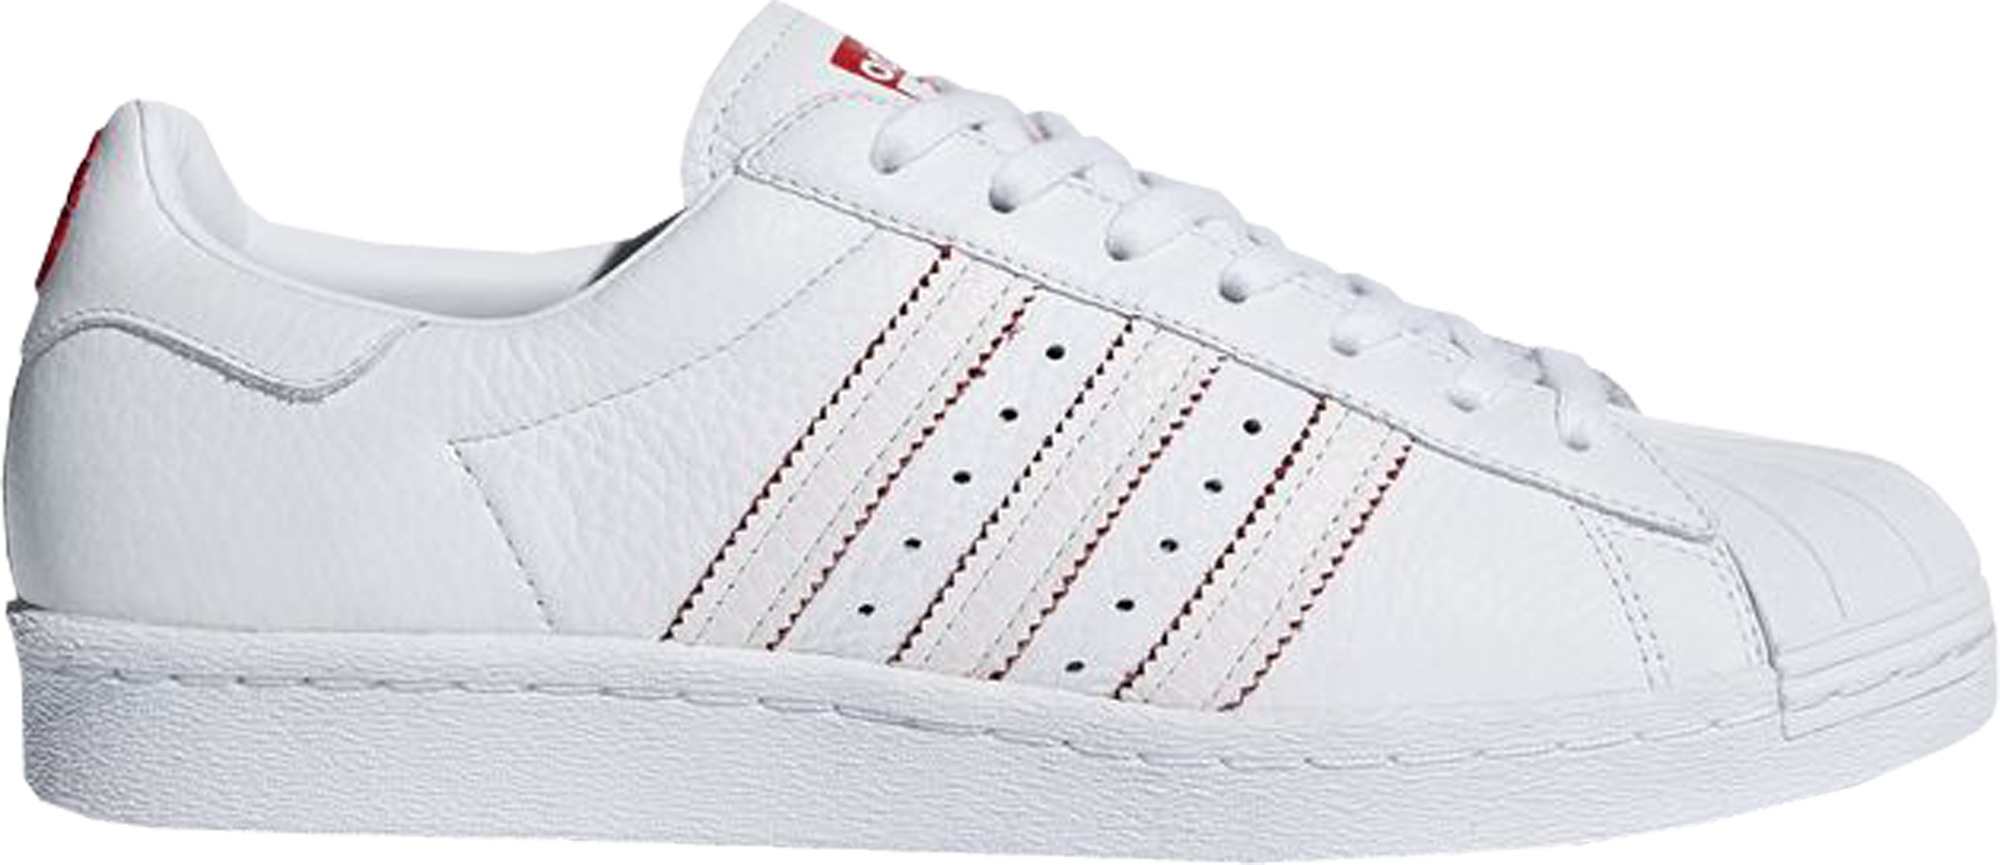 adidas Superstar 80s Chinese New Year (20